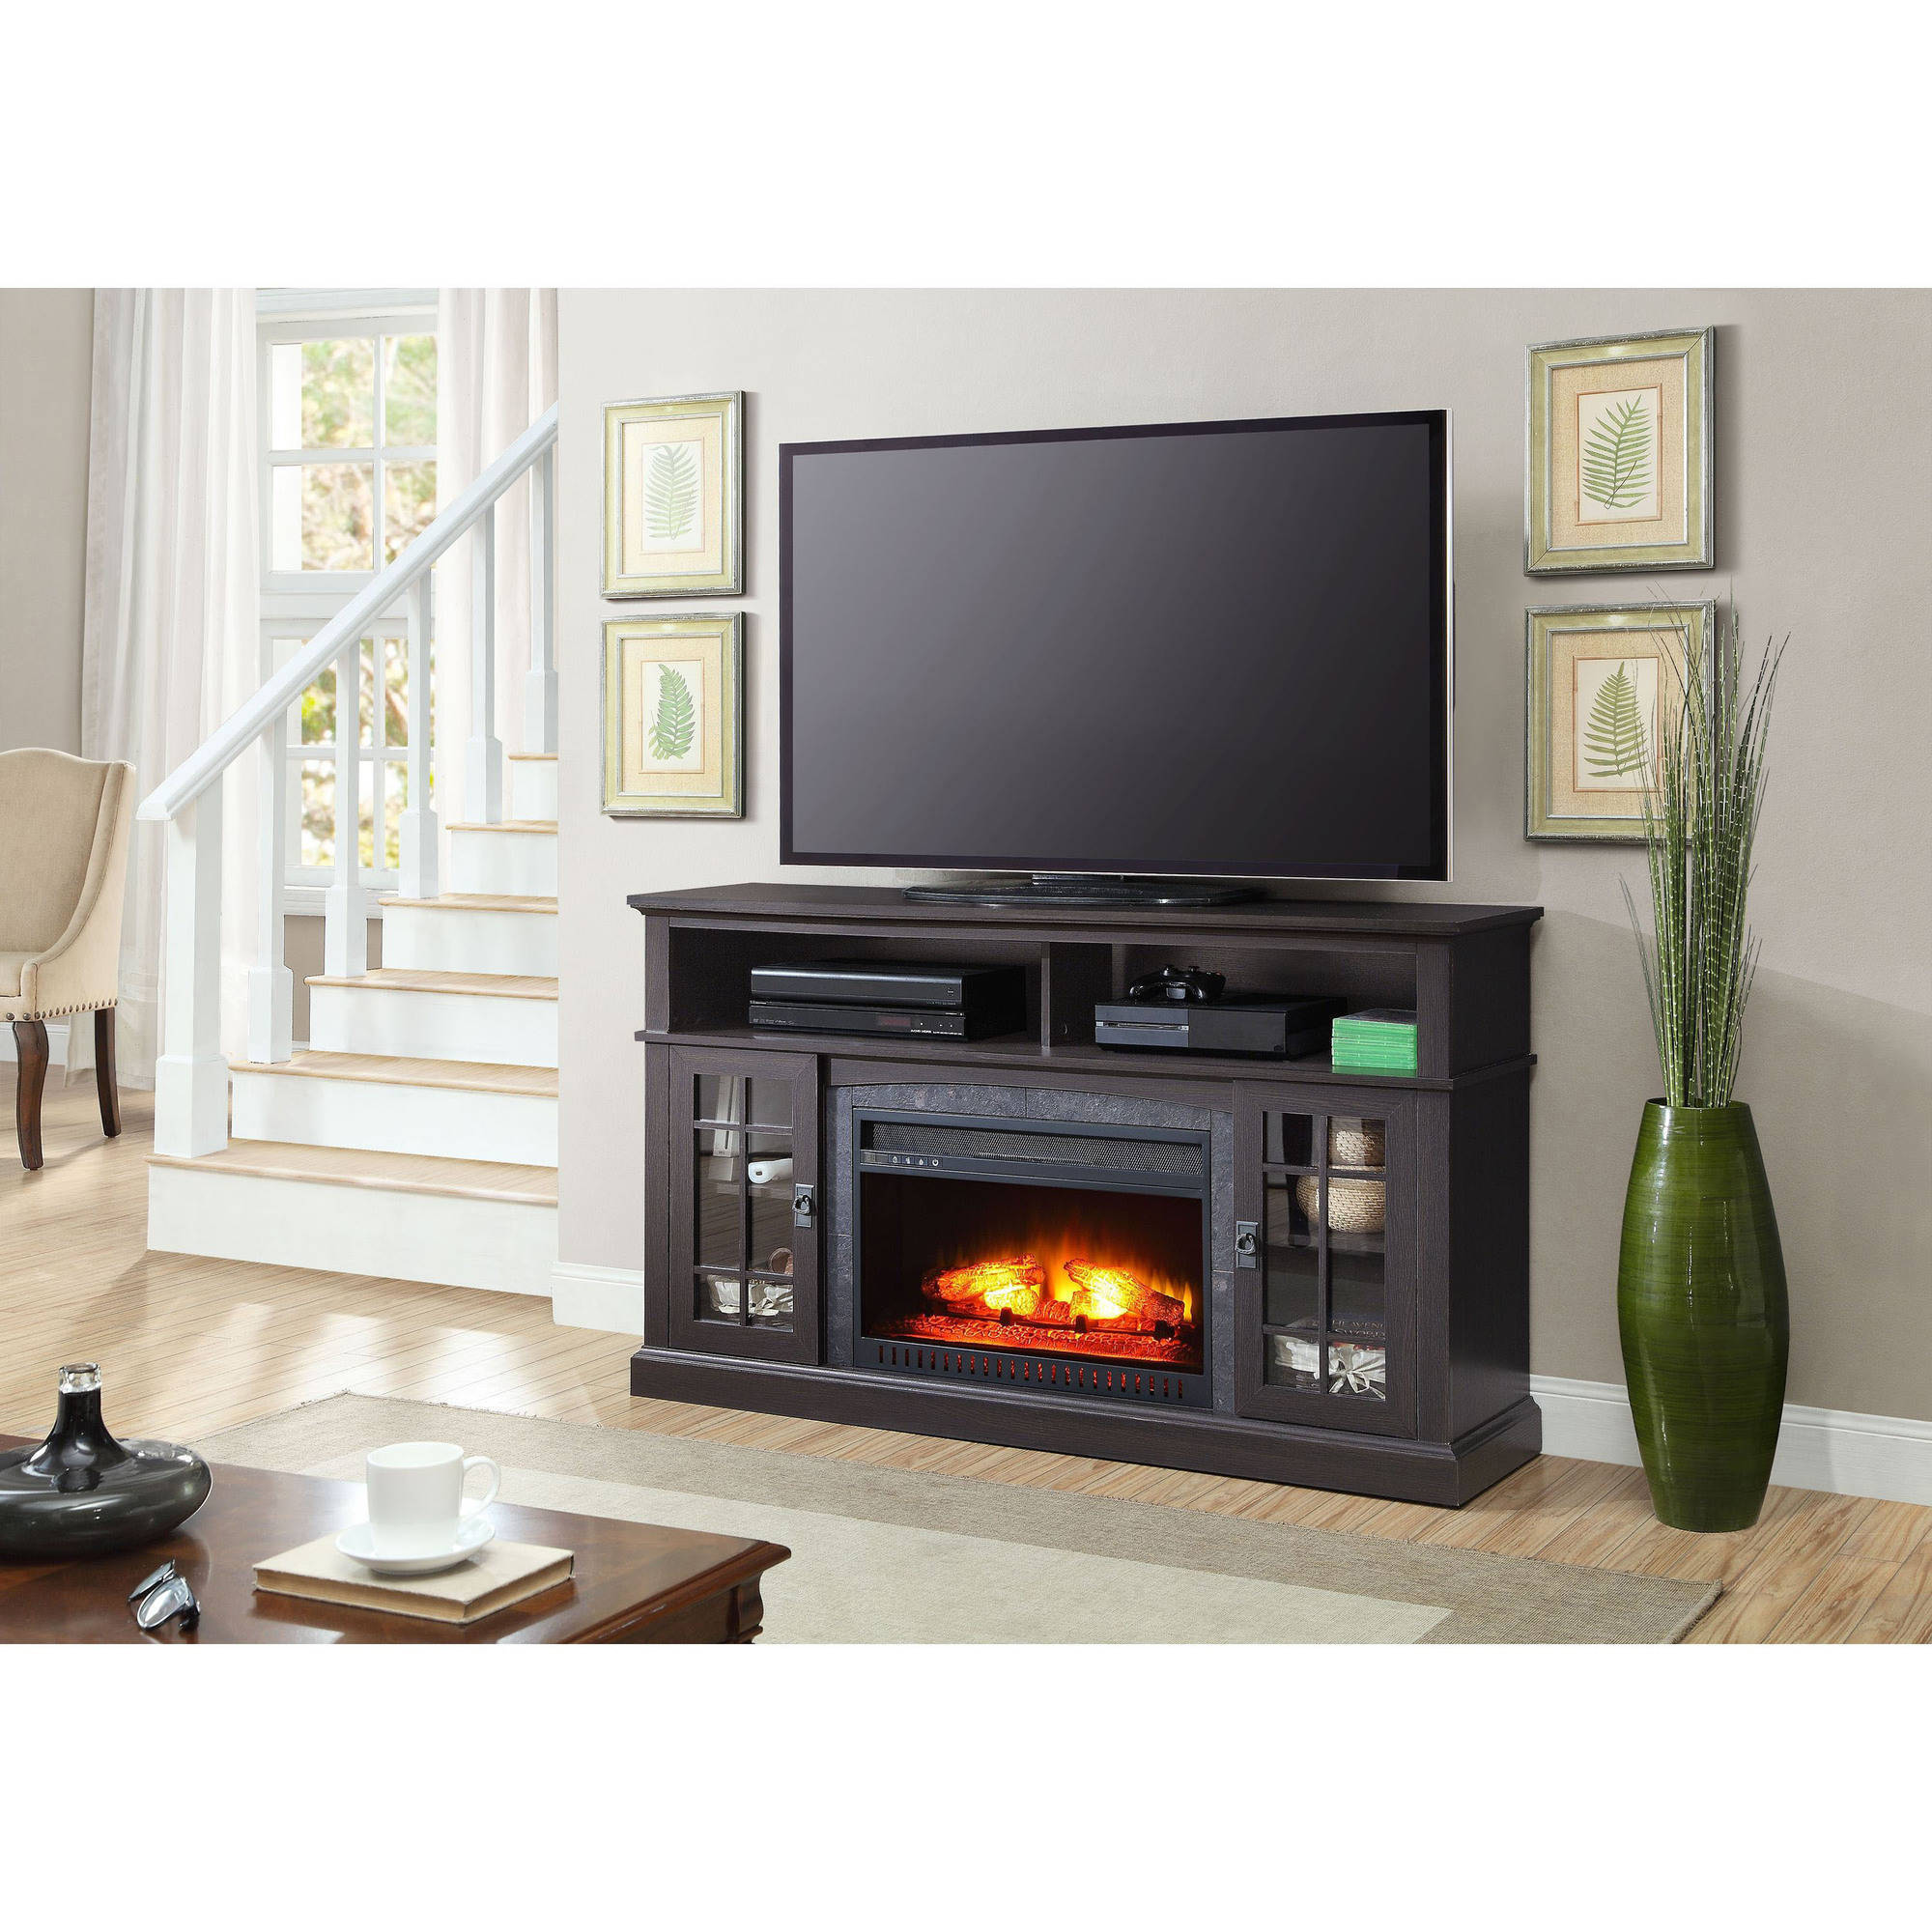 "Better Homes and Gardens Mission Media Fireplace for TVs up to 65"", Black"